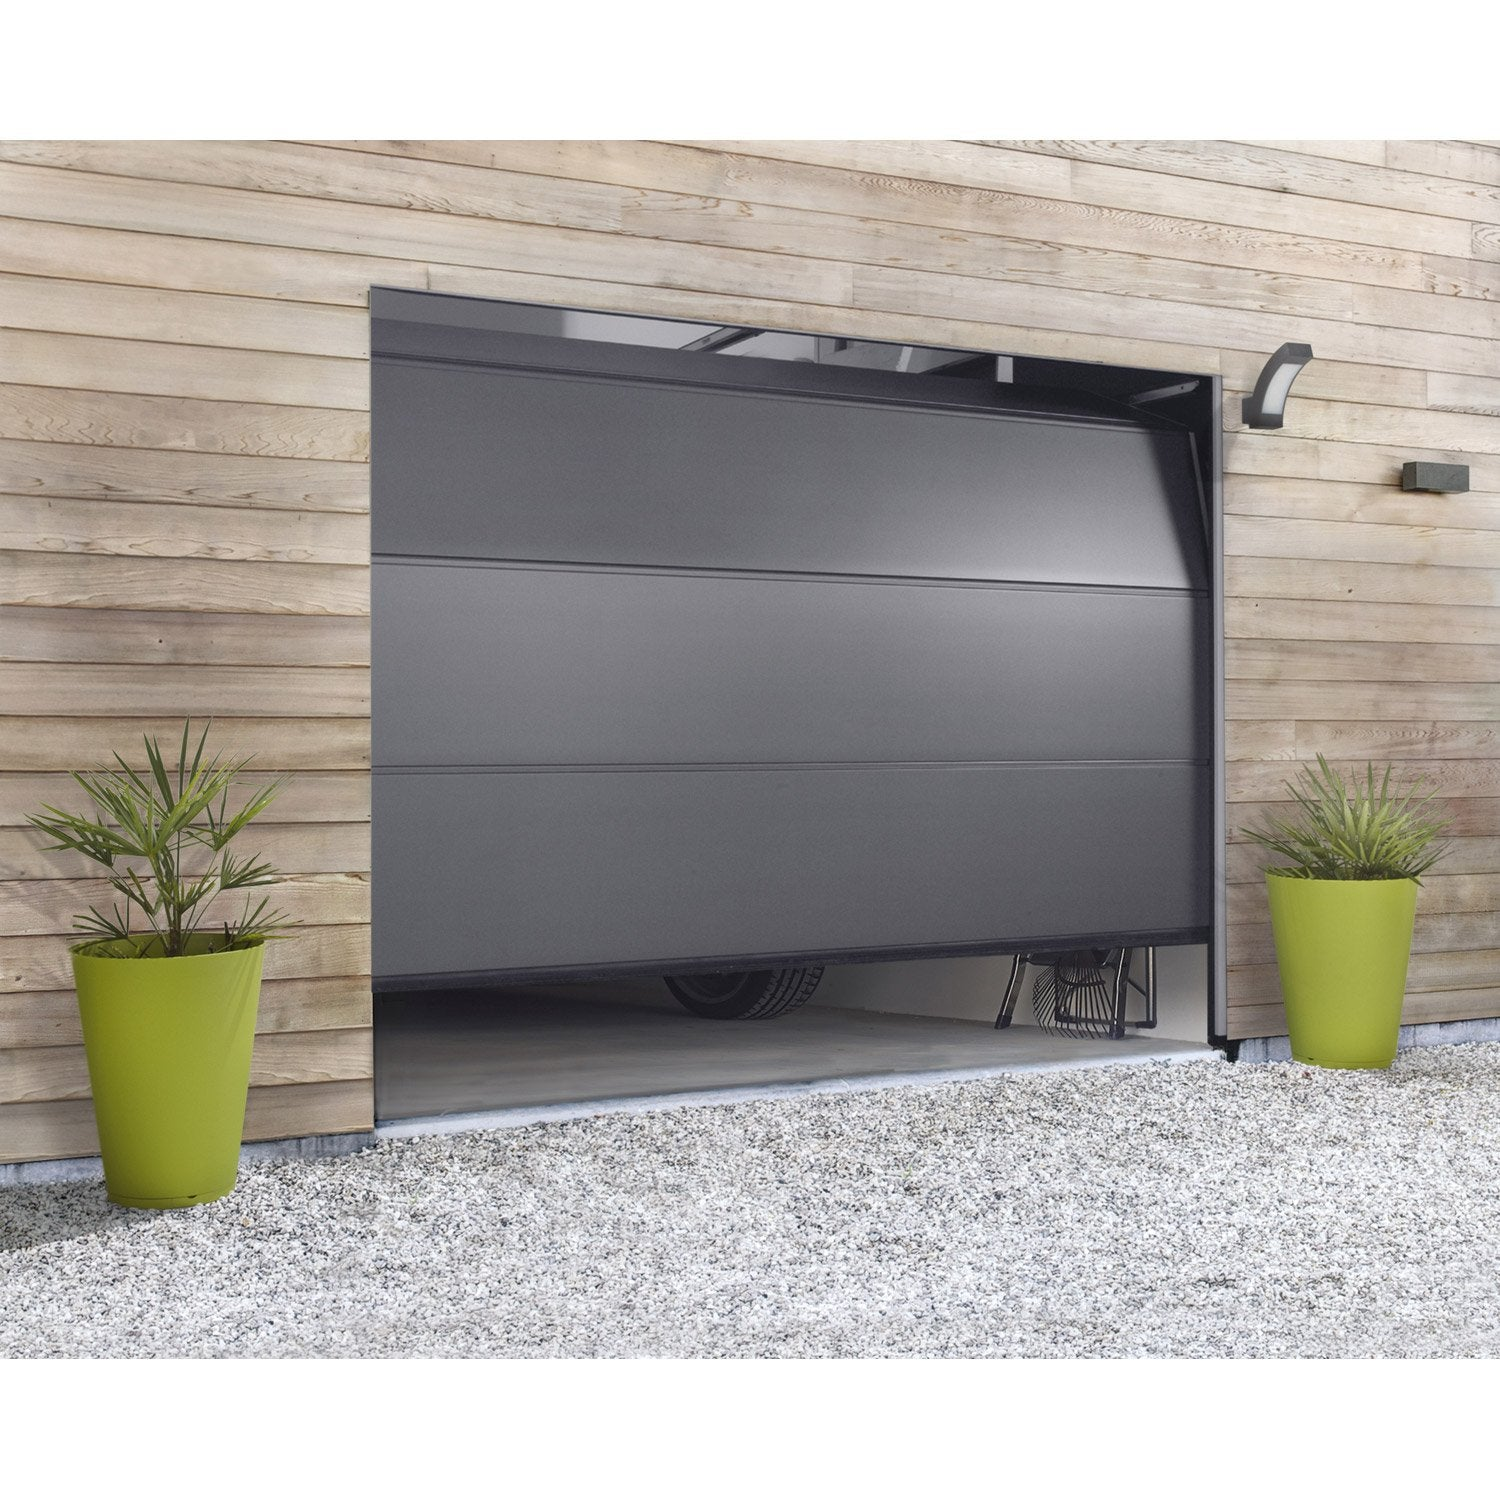 Porte entree hormann leroy merlin pm27 jornalagora for Avis porte de garage sectionnelle leroy merlin